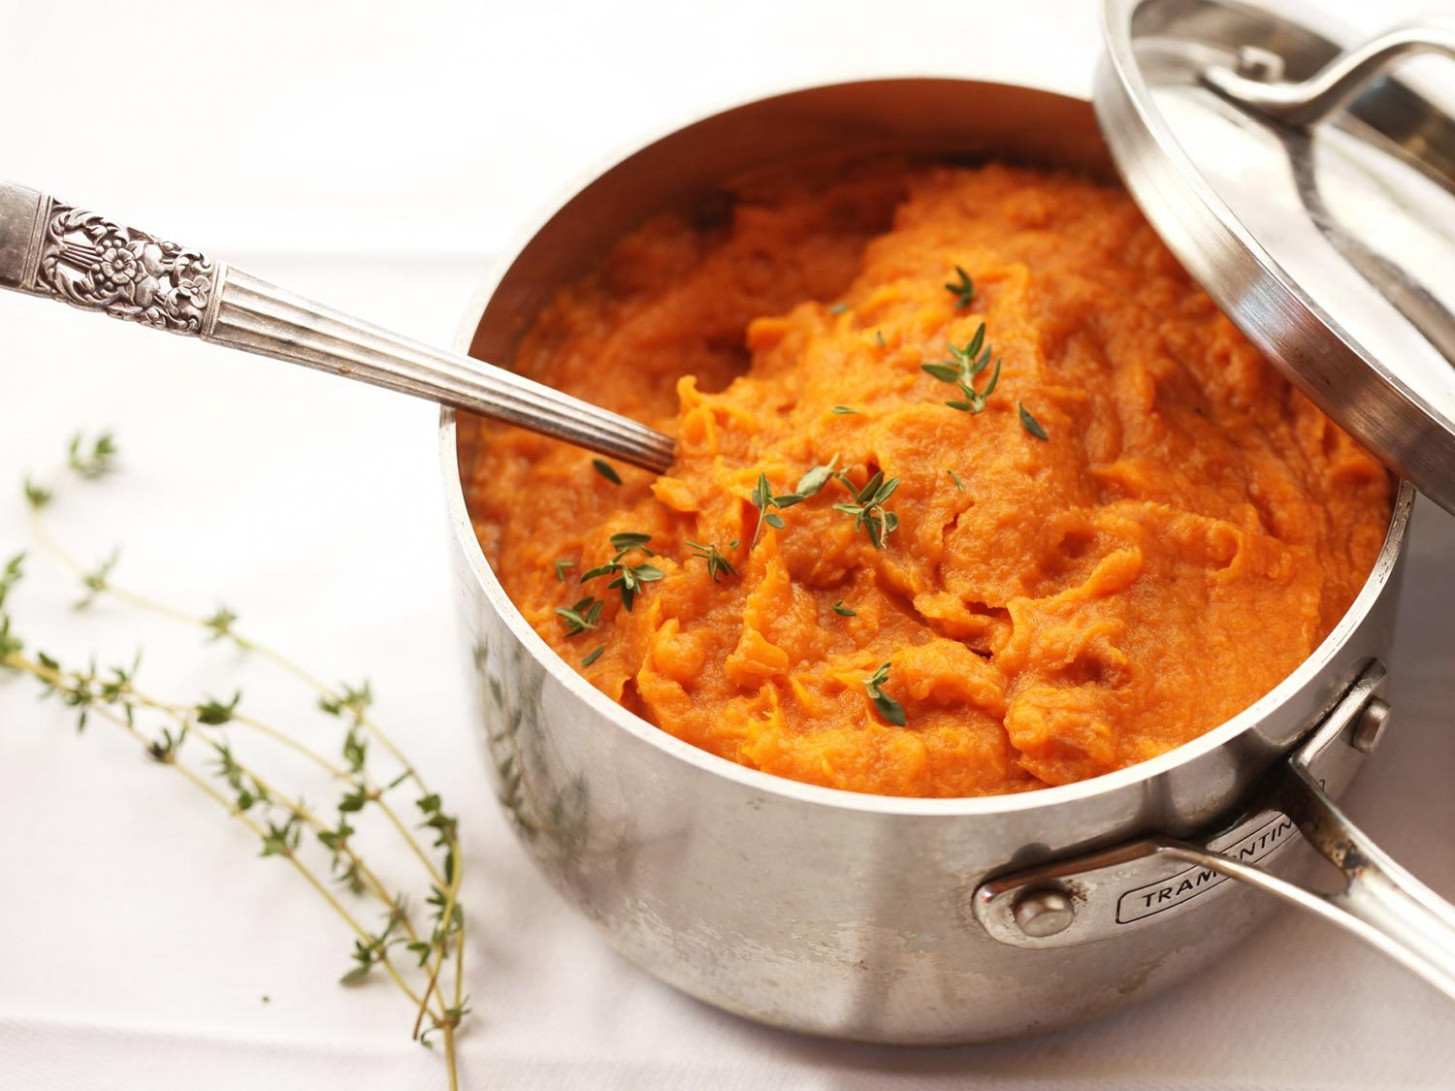 The Best Mashed Sweet Potatoes Recipe - pureed food recipes